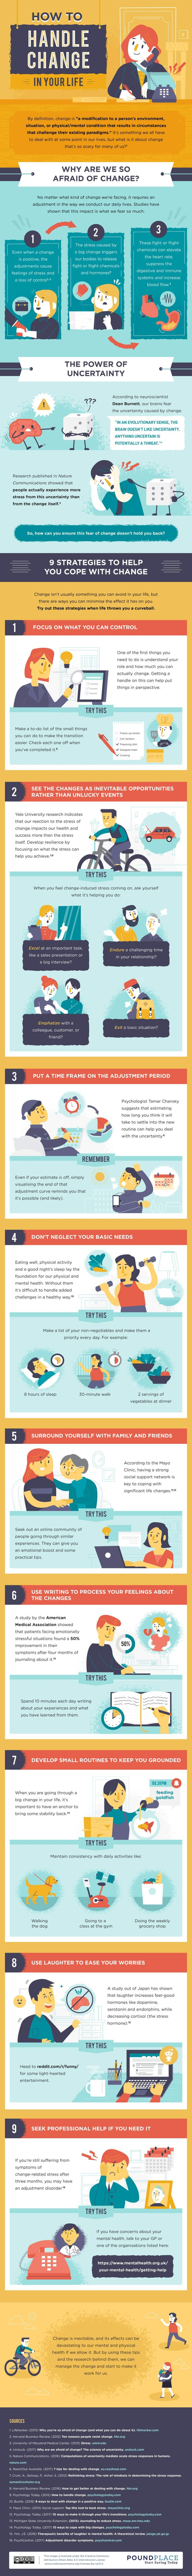 How To Handle Change In Your Life - #infographic